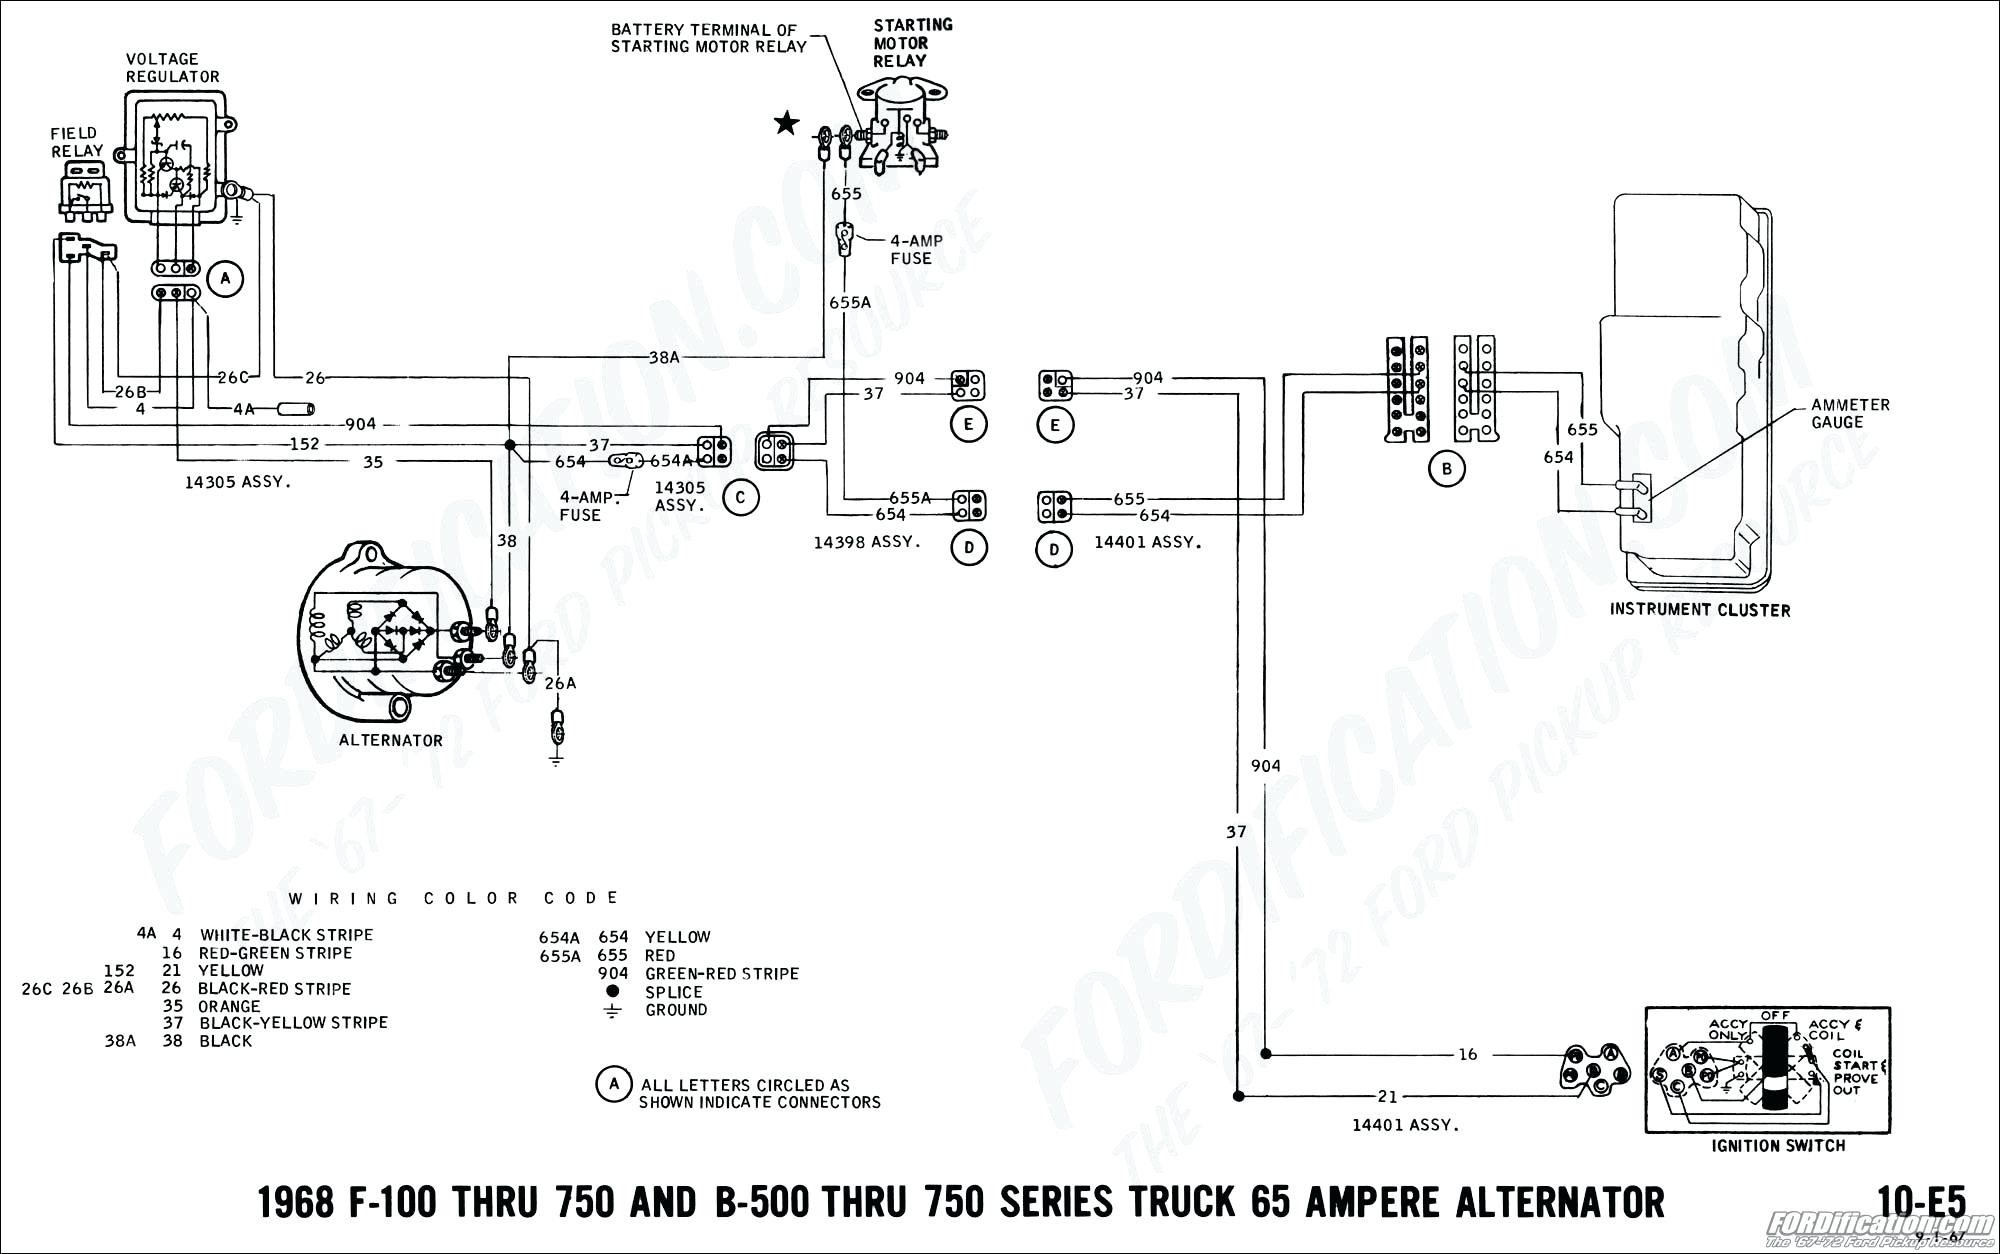 Hyster Forklift Wiring Diagram E60 Libraries Libraryhyster Electrical For Regulator Online Schematic Wheel